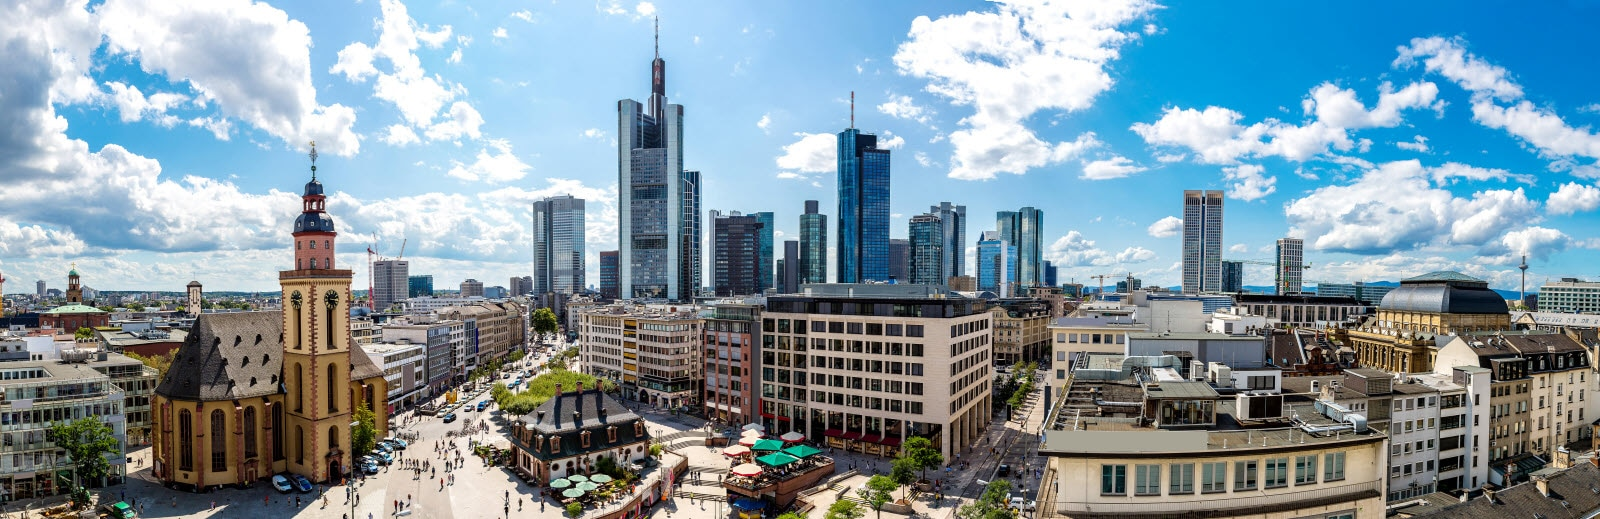 Summer panorama of the financial district in Frankfurt, Germany in a summer day